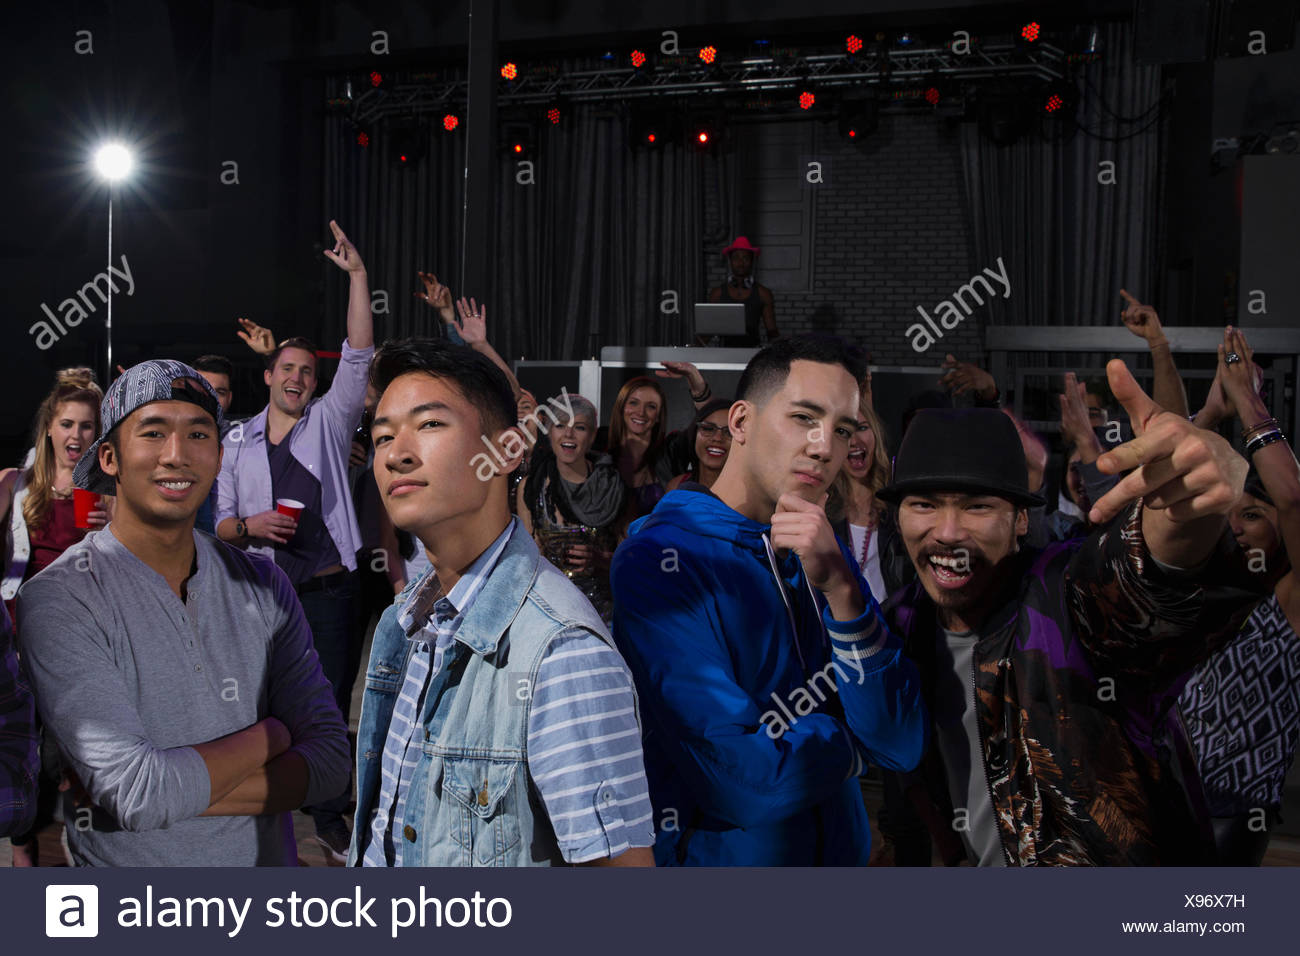 Portrait of confident men among crowd in nightclub - Stock Image